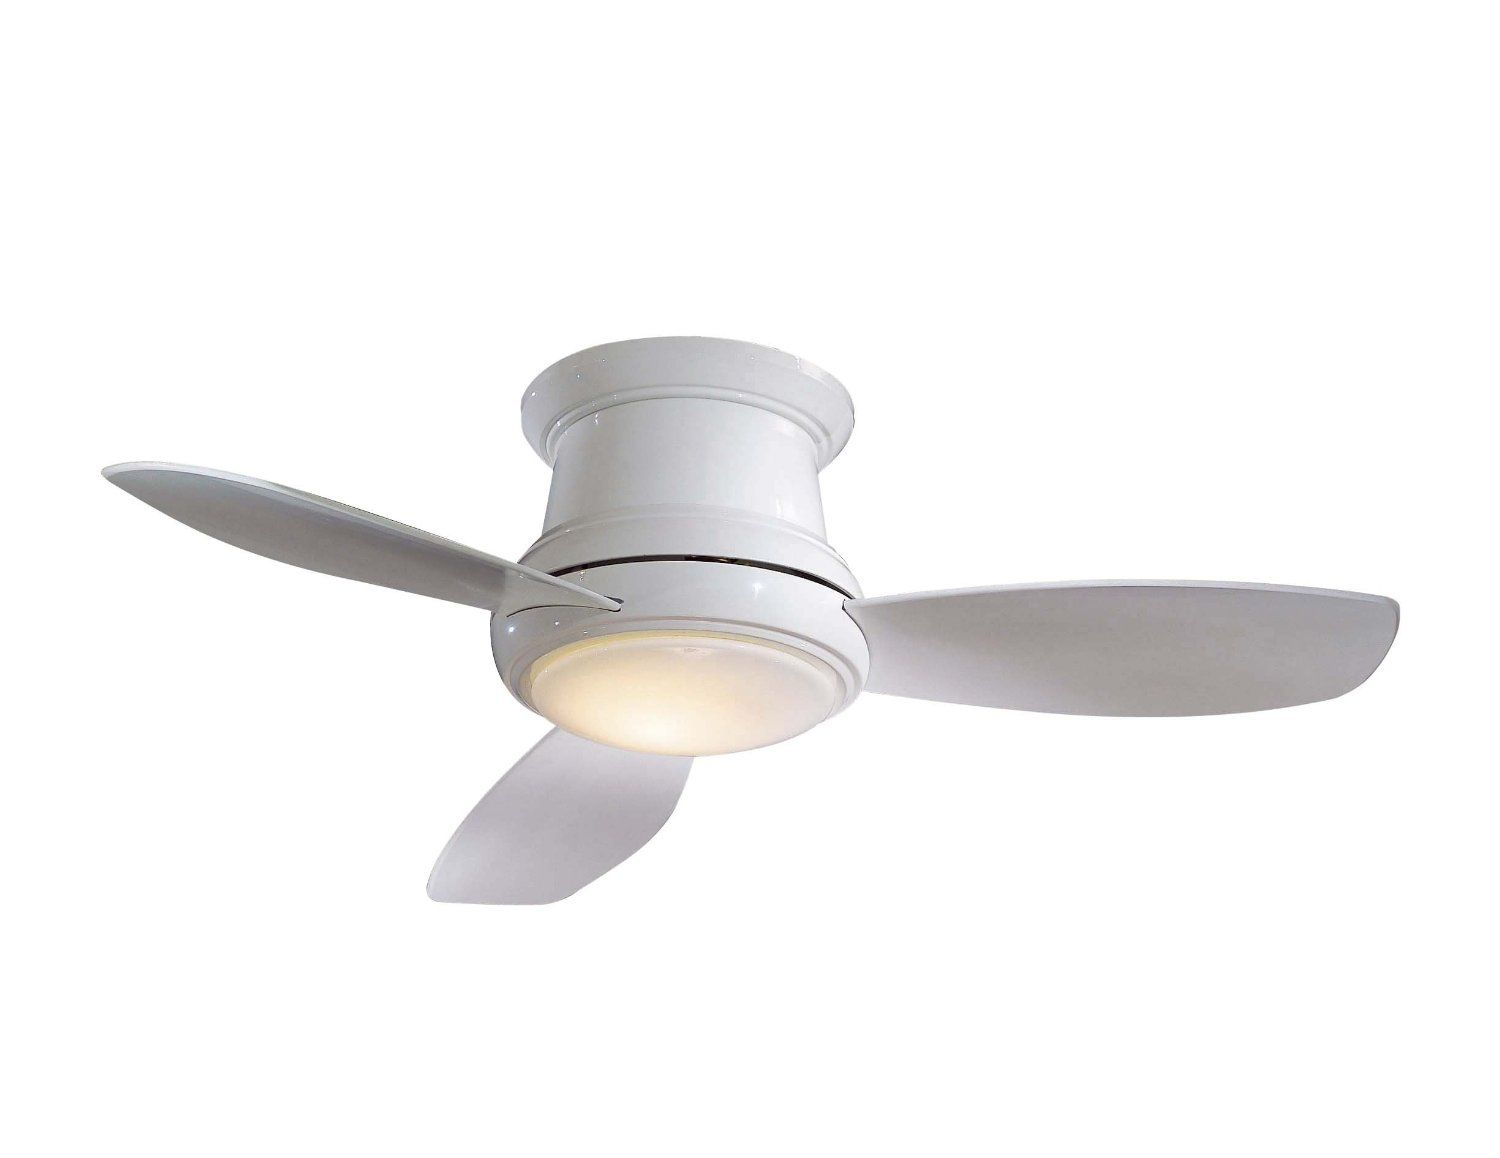 Minka Aire F518 Wh 44 Inch Concept Ii Flush Mount Ceiling Fan